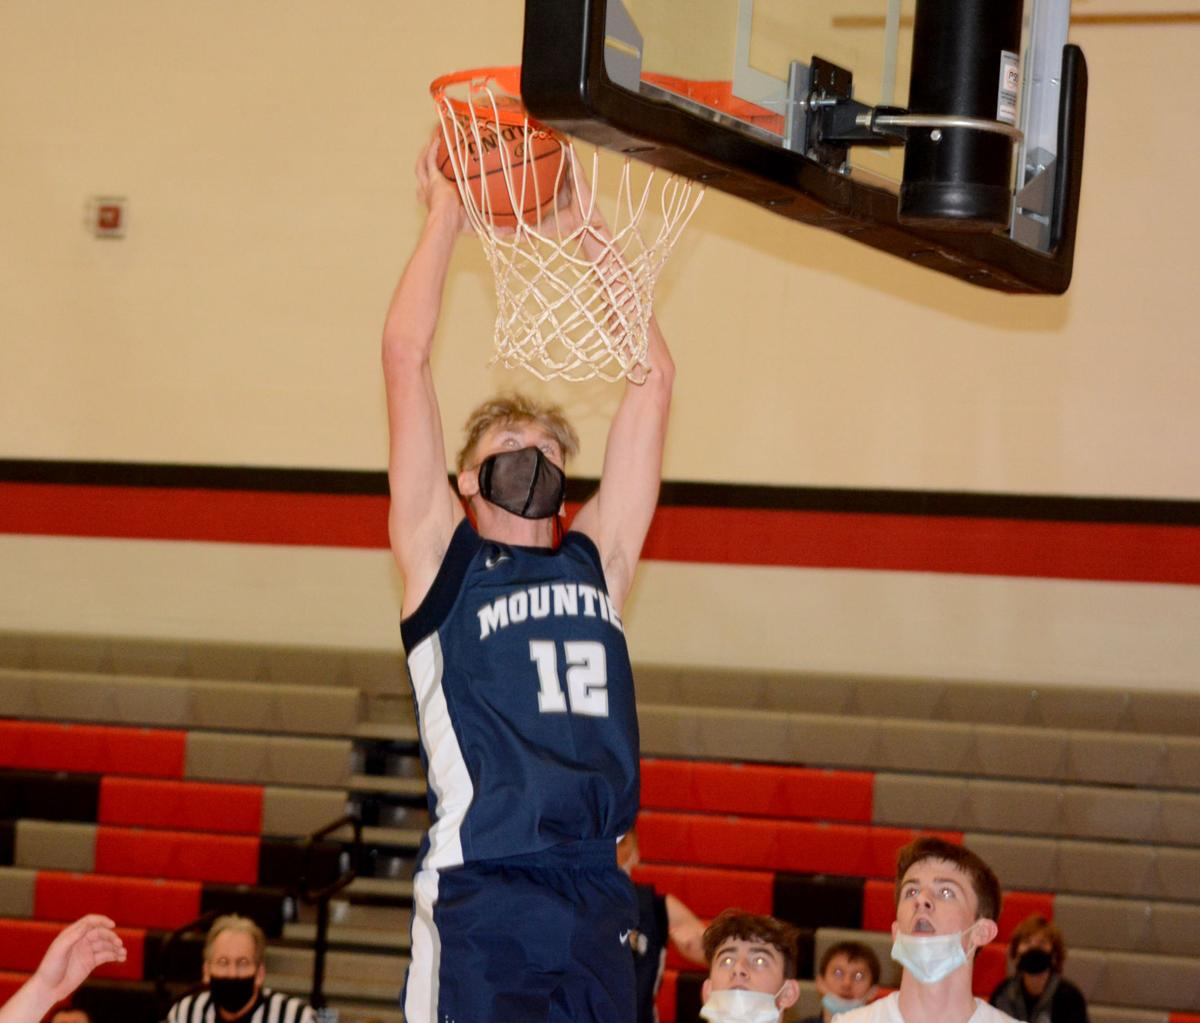 Ryan Whitehead dunk